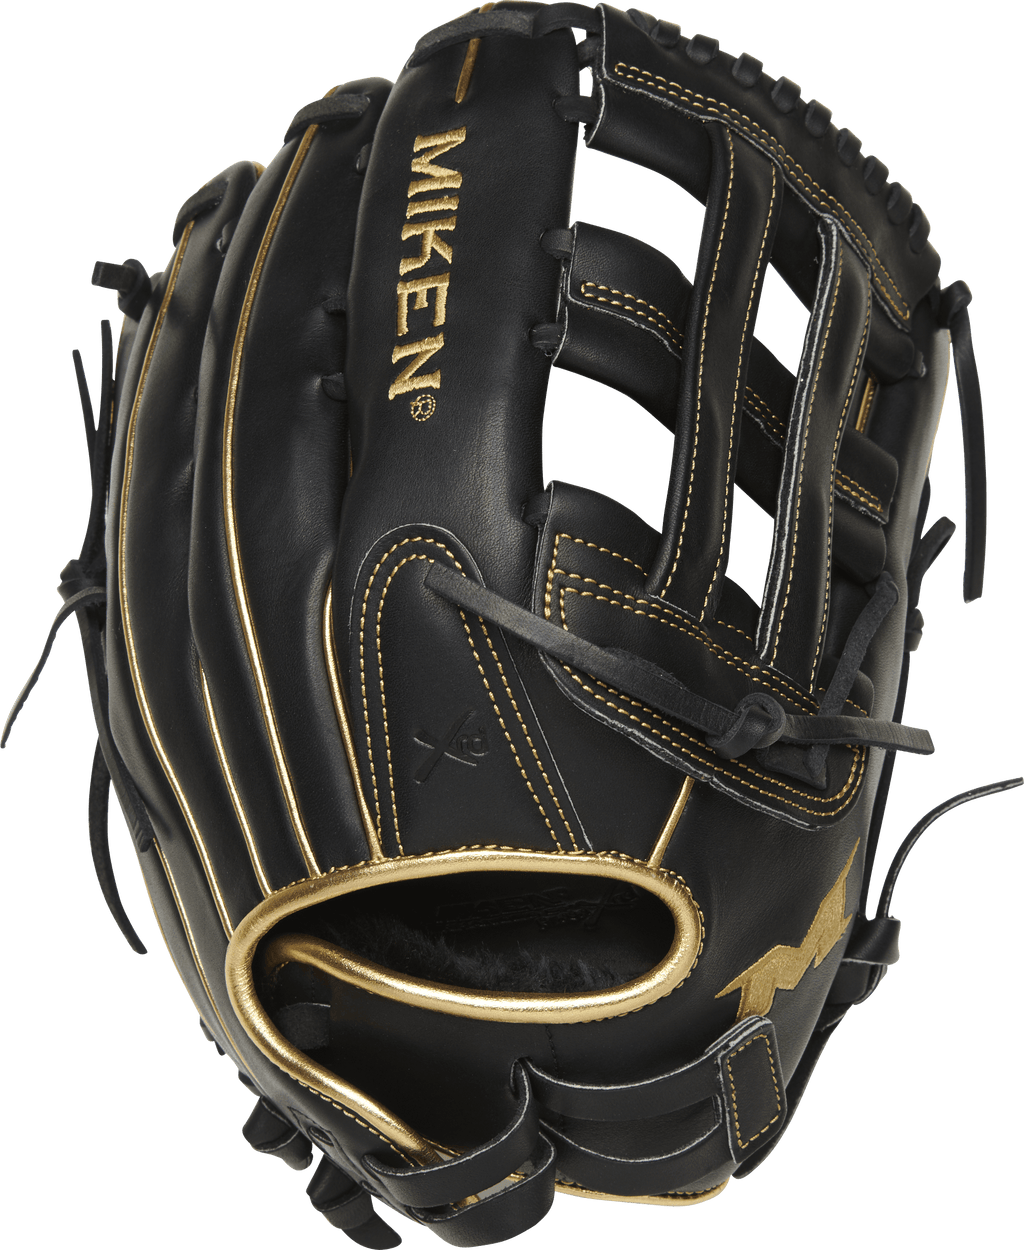 Miken Black & Gold PRO Series 14″ LE Slowpitch Fielding Glove: PRO140-BG